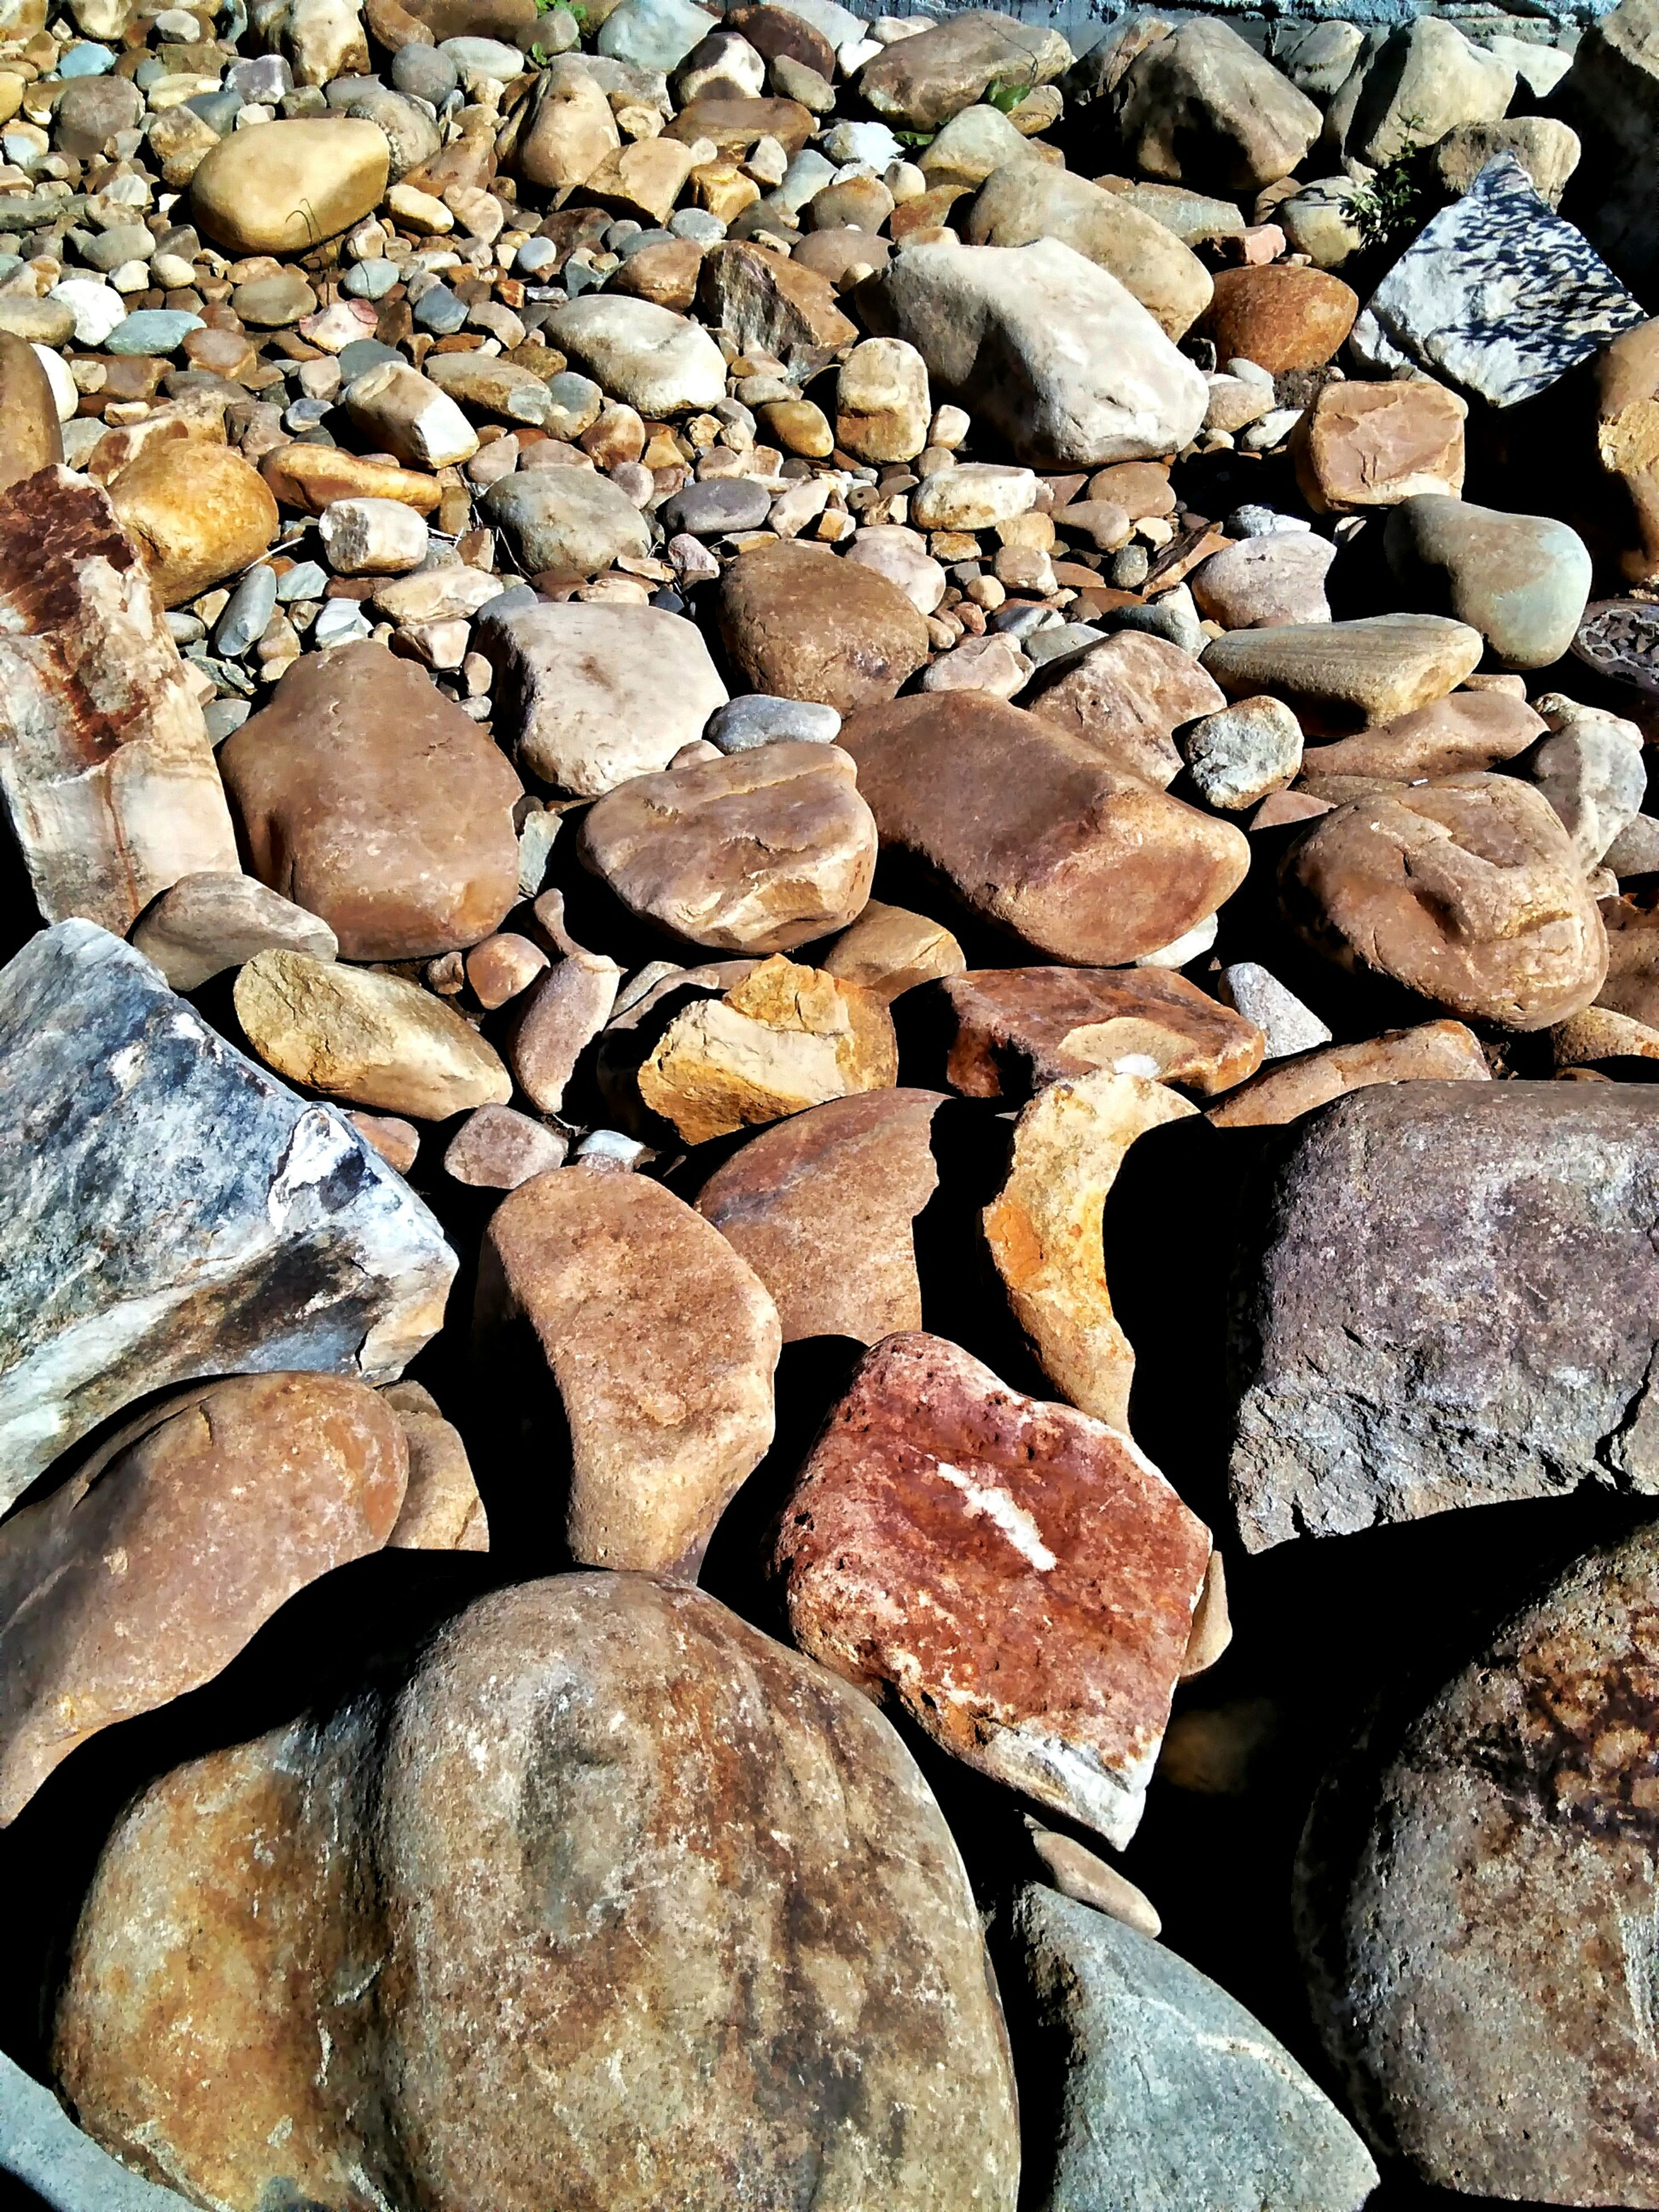 abundance, full frame, backgrounds, rock - object, stone - object, large group of objects, day, nature, sunny, outdoors, tranquility, stone, rock formation, tranquil scene, no people, scenics, beauty in nature, non-urban scene